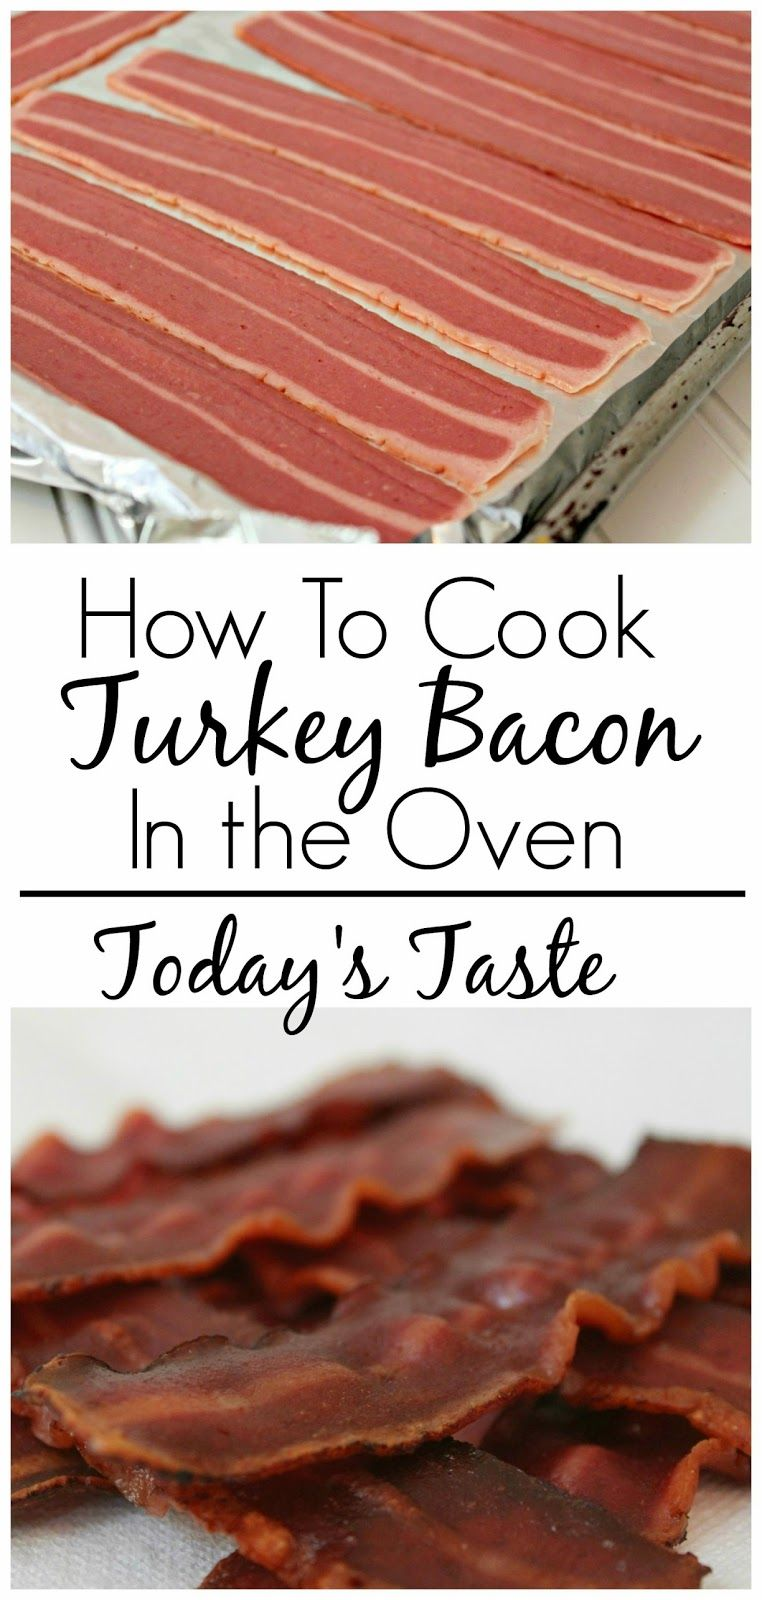 How To Cook Turkey Bacon In The Oven From Todaystaste